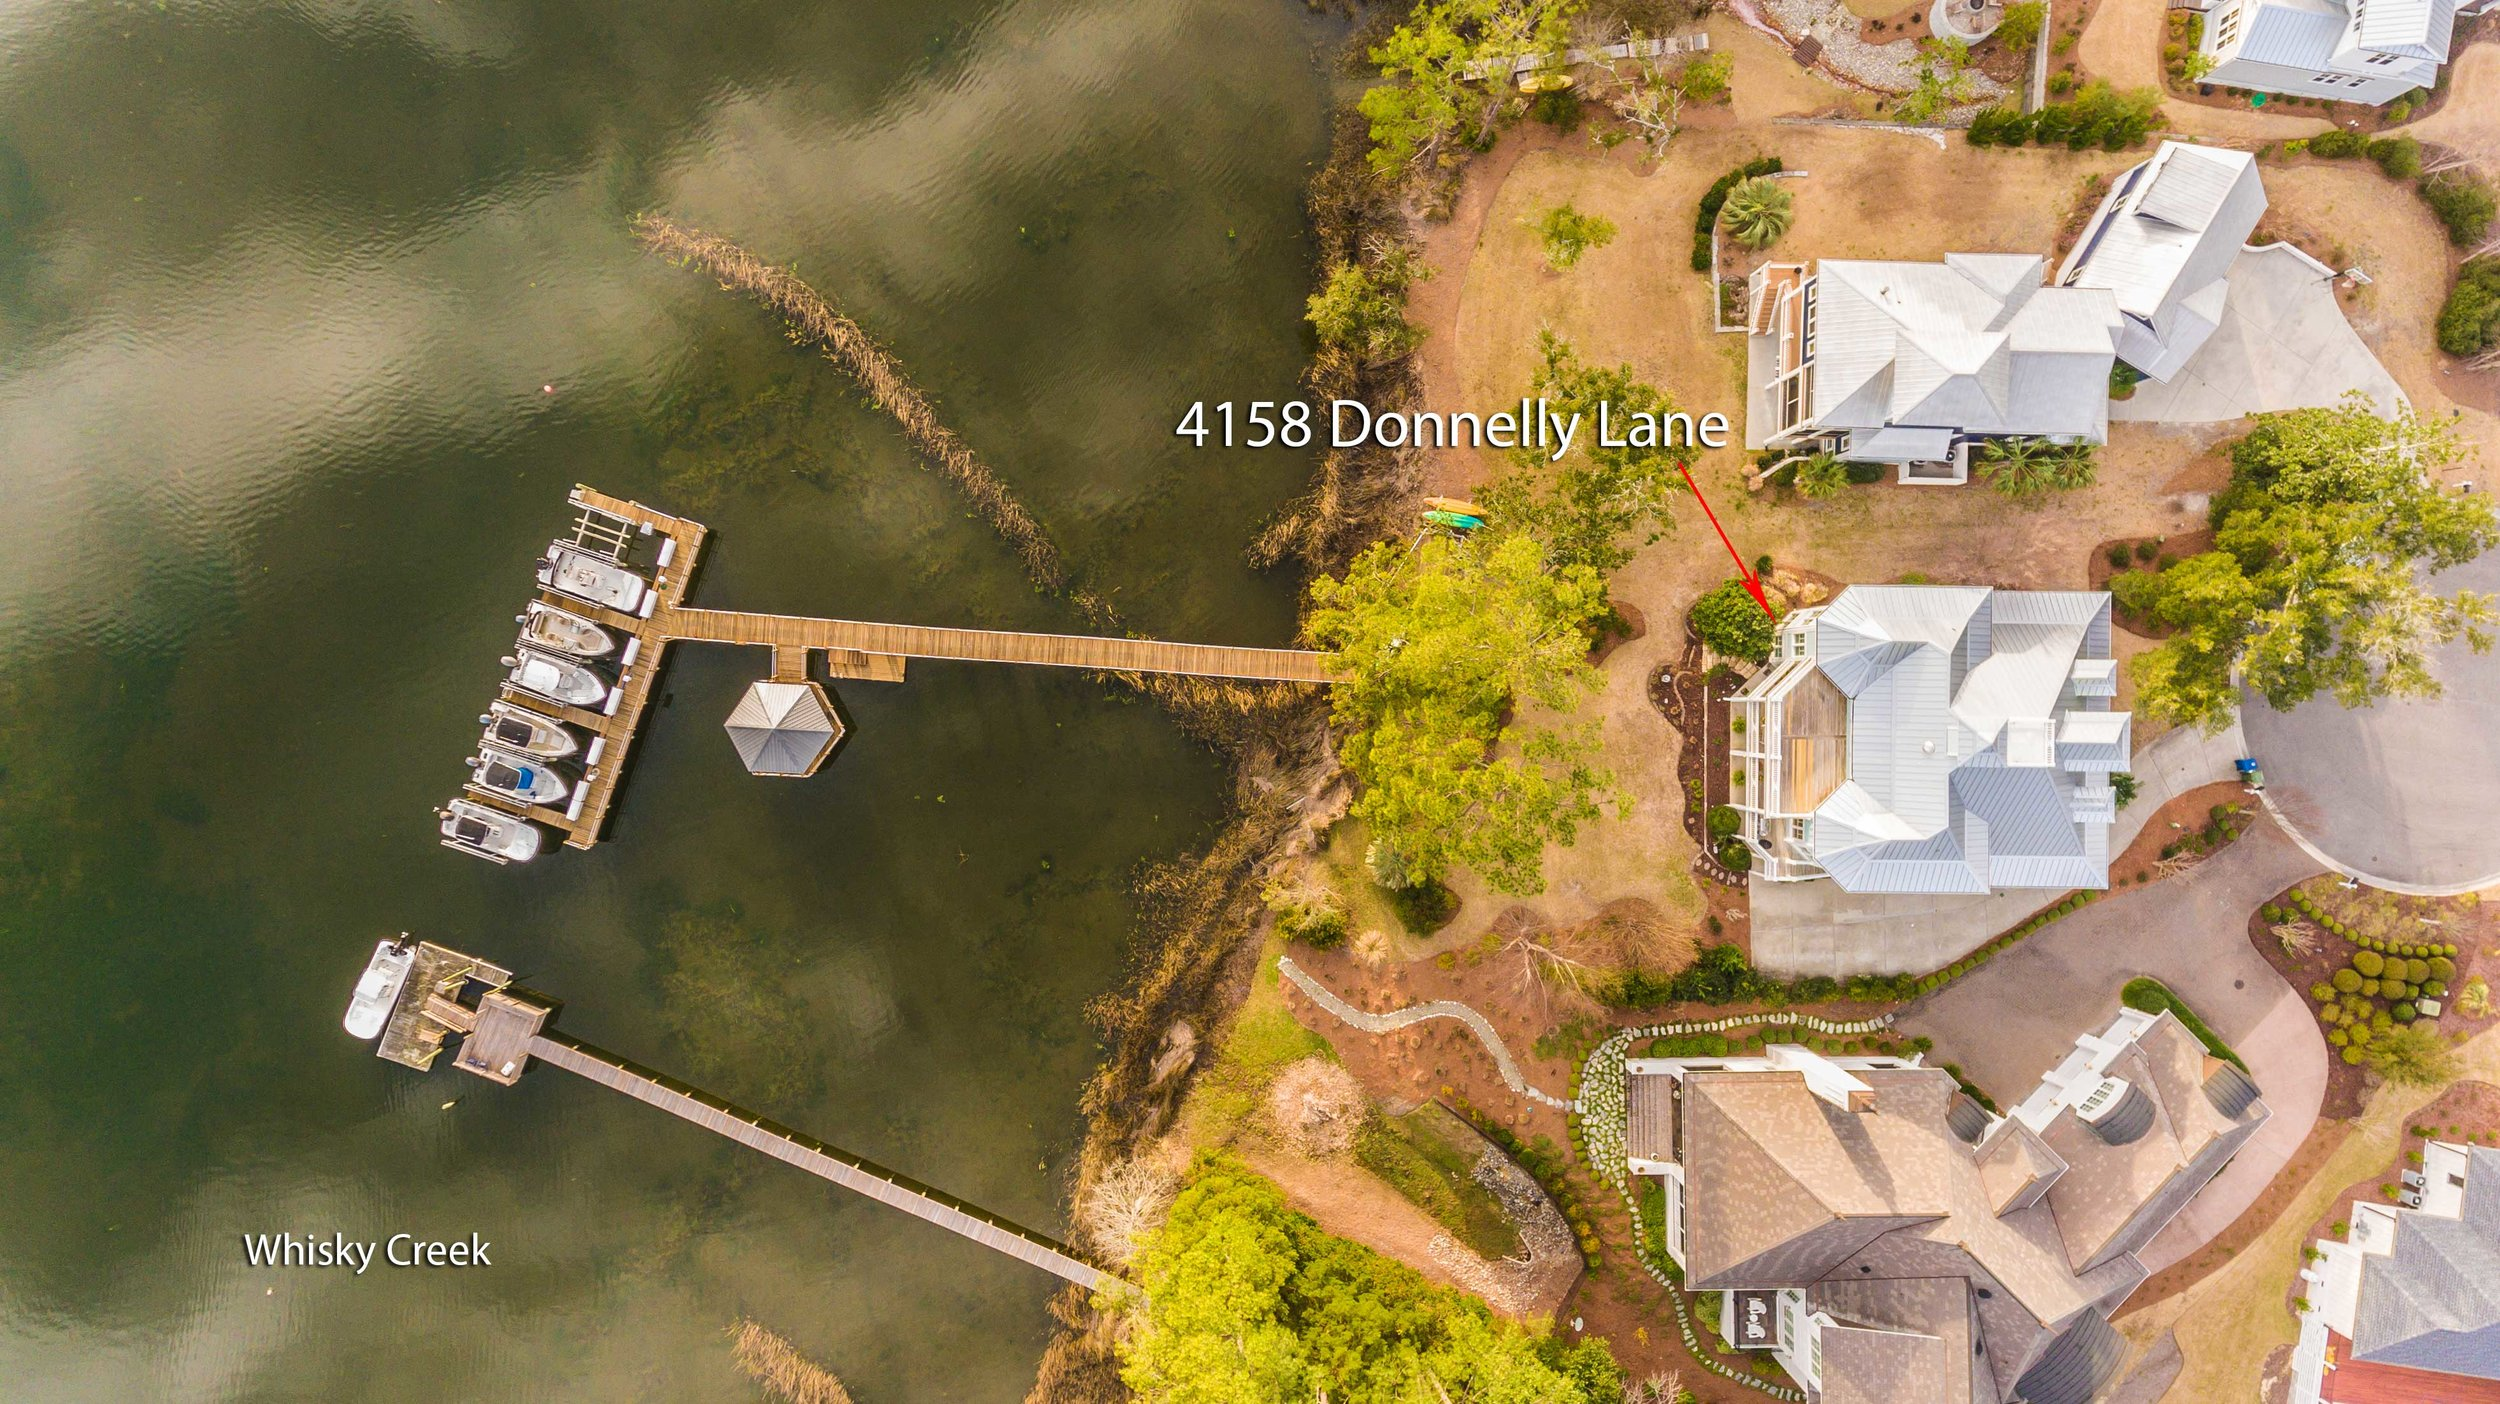 4158 Donnelly Ln Wilmington NC-print-004-2-DJI 0014-3924x2204-300dpi.jpg